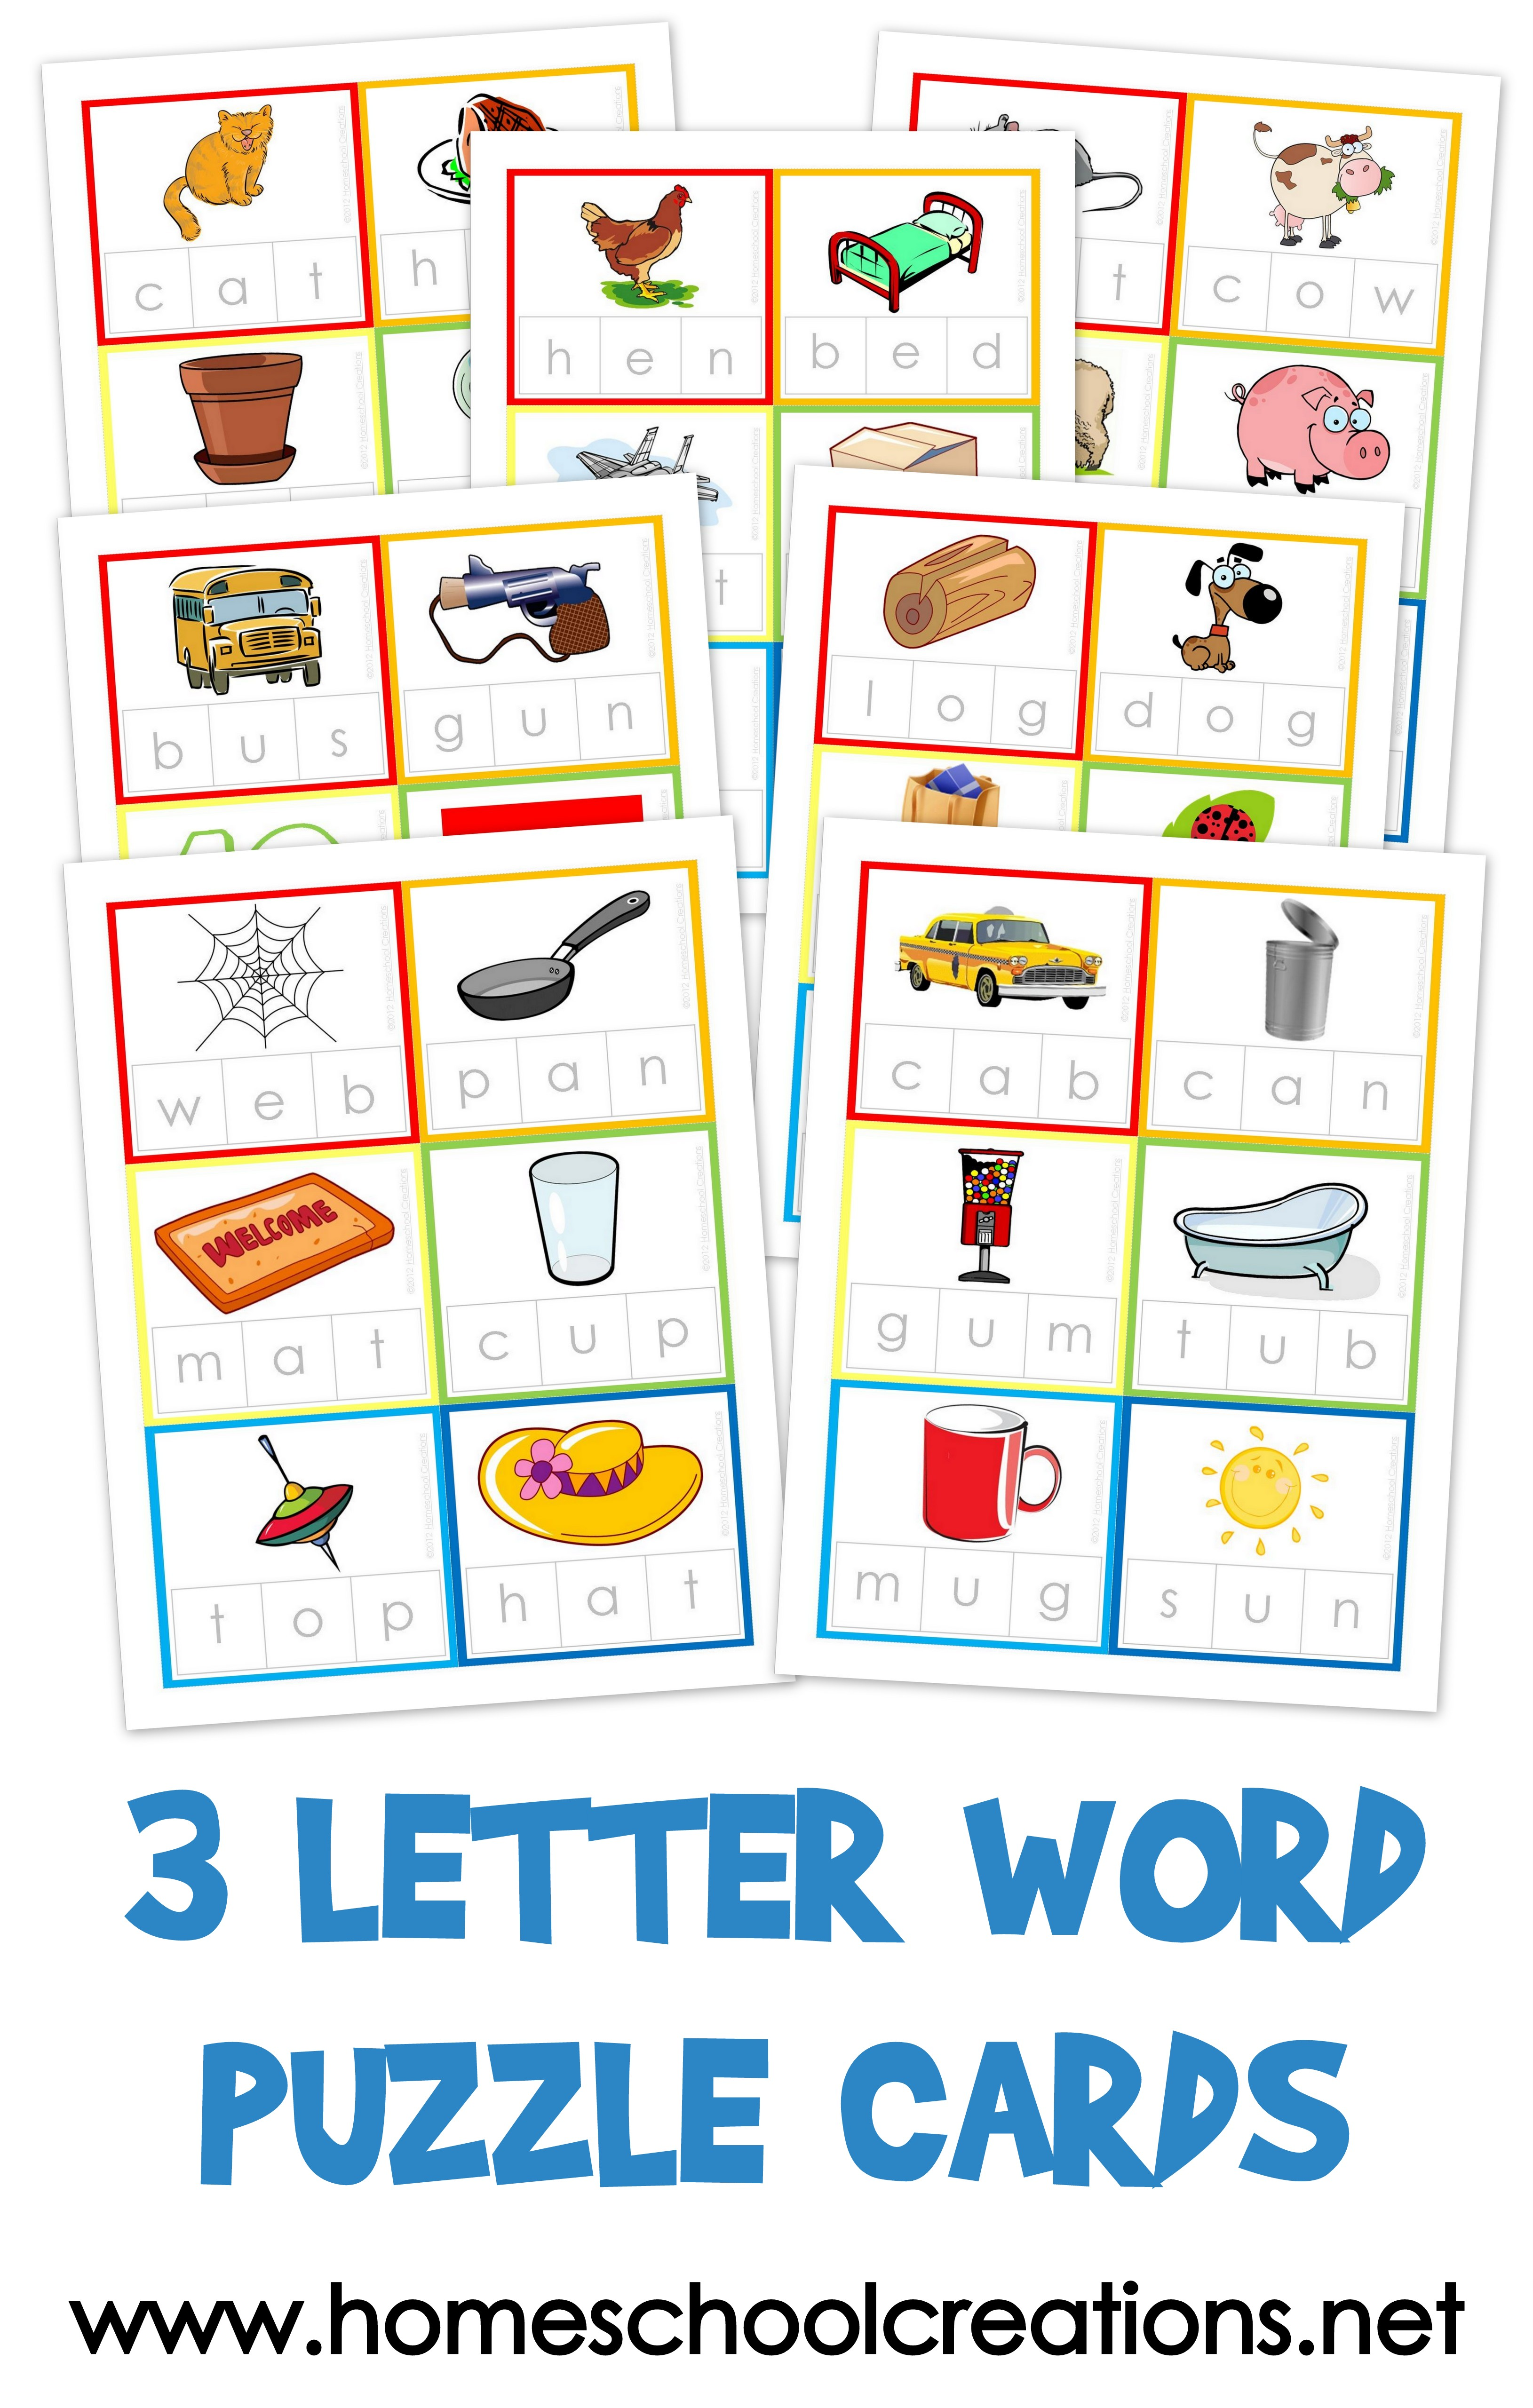 3 Letter Word Puzzle Cards